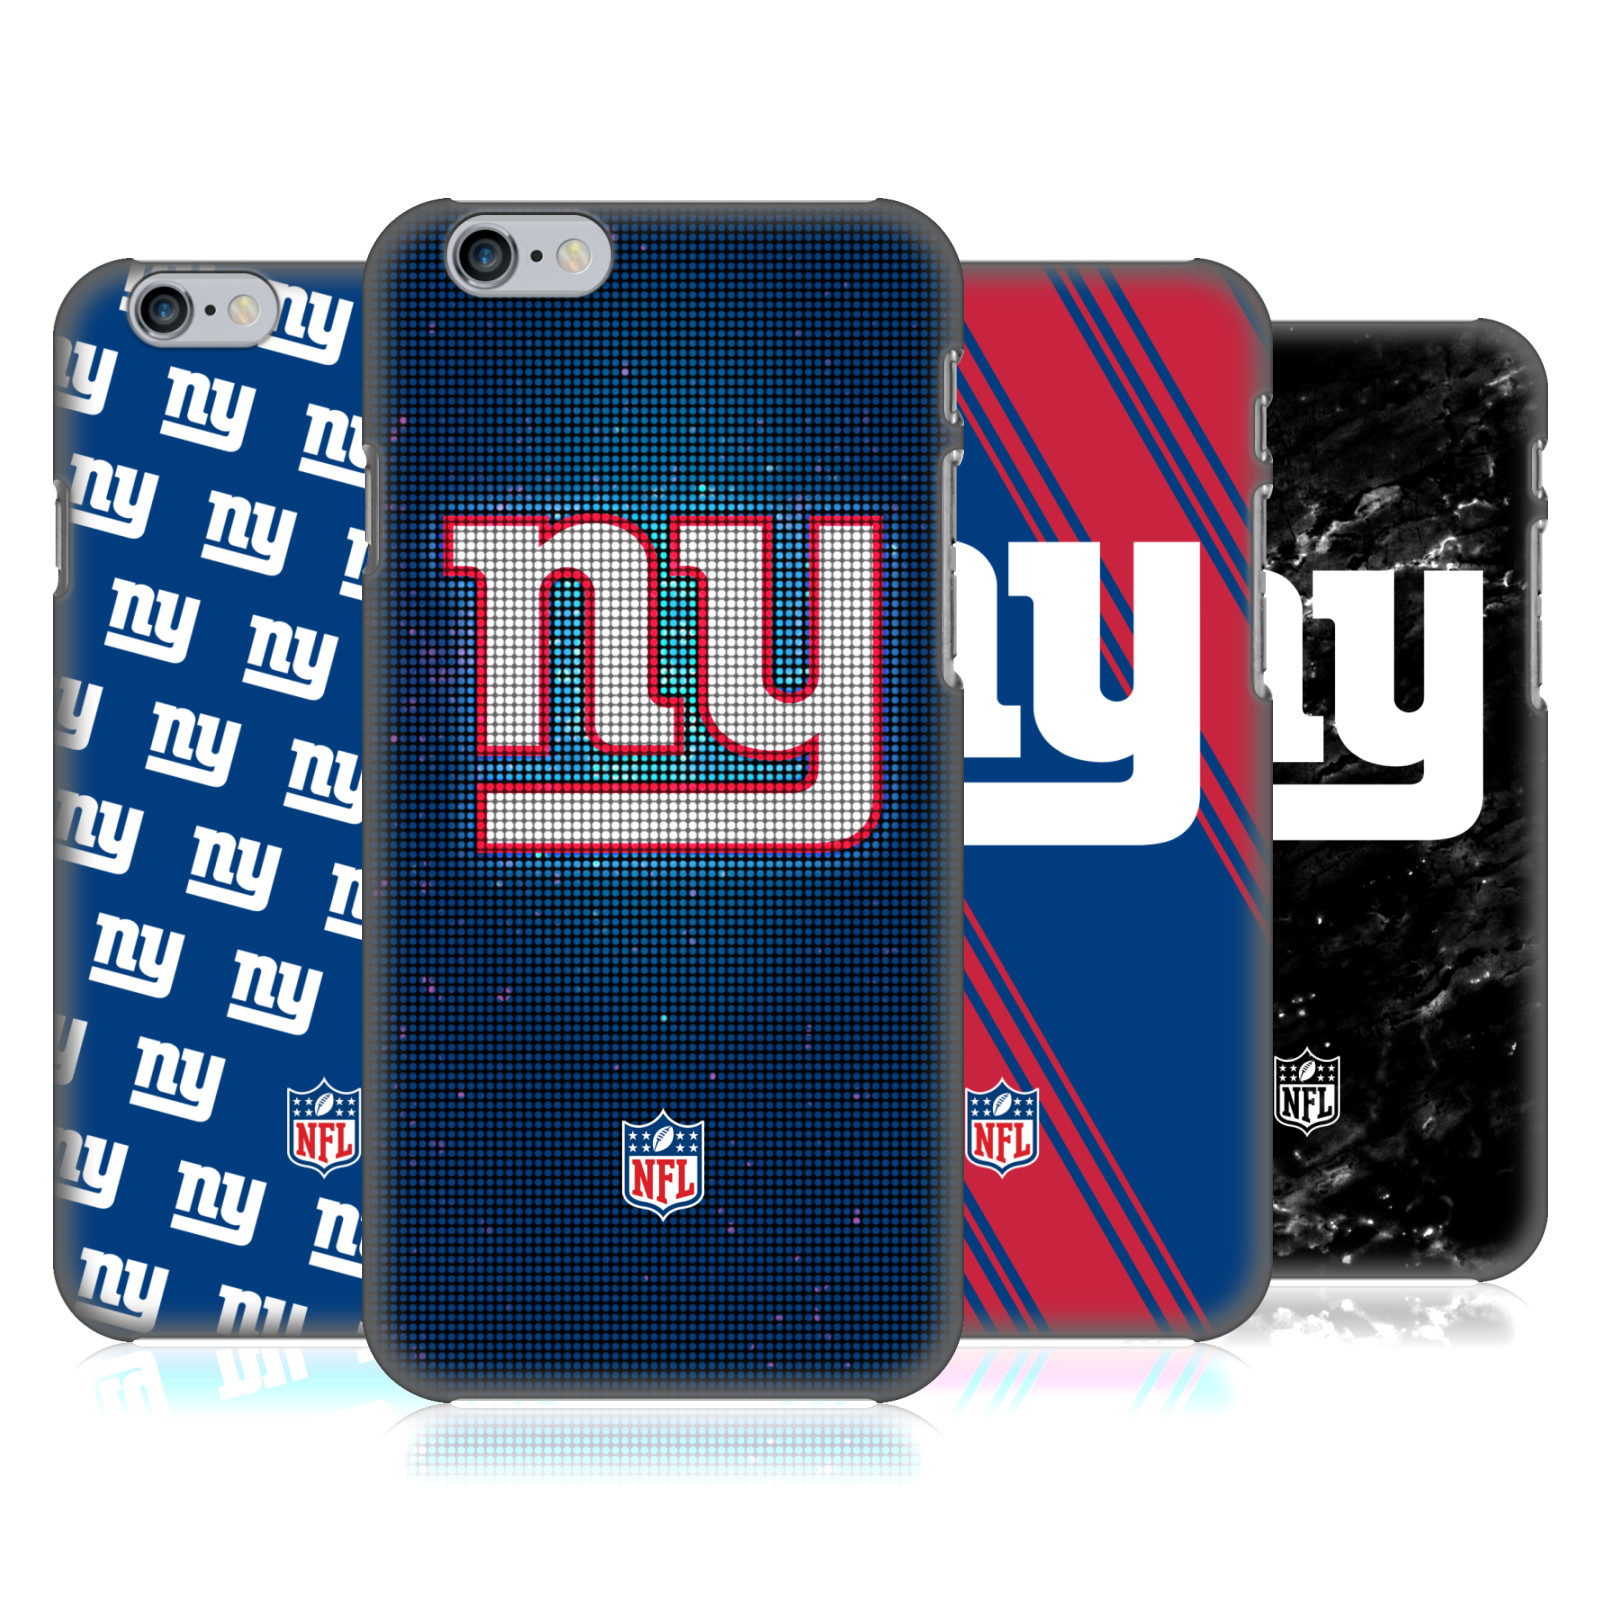 NFL 2017/18 New York Giants